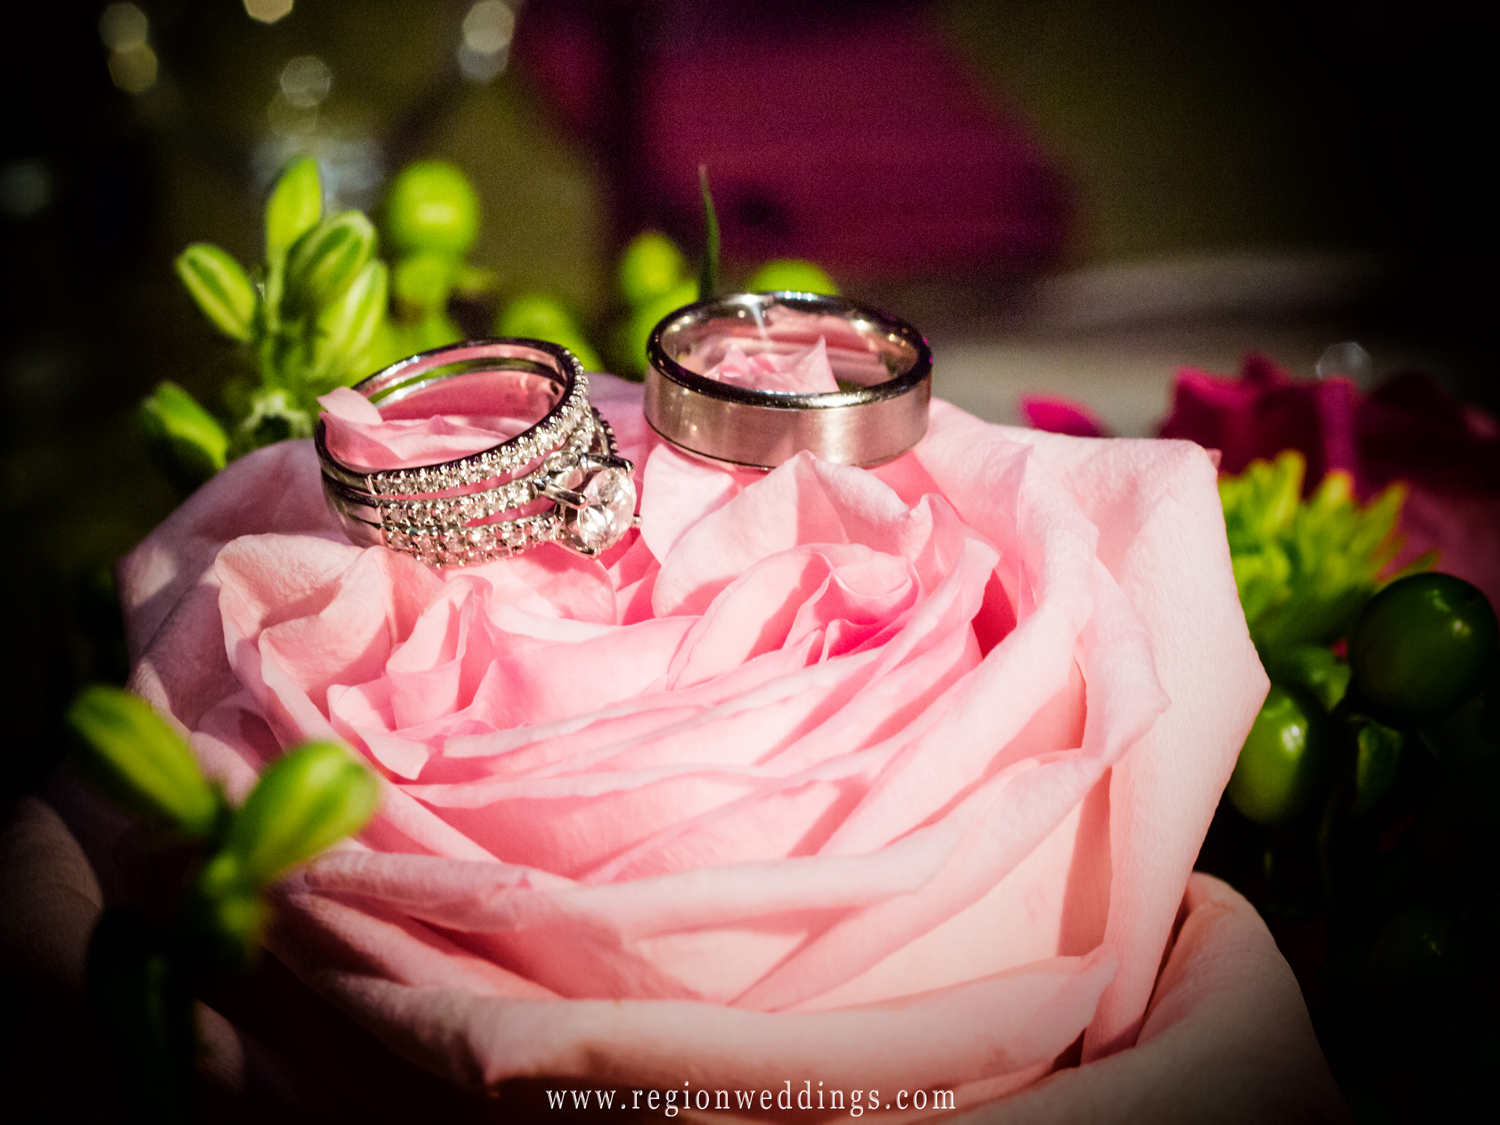 Wedding ring photograph featuring the bride's bouquet of flowers.